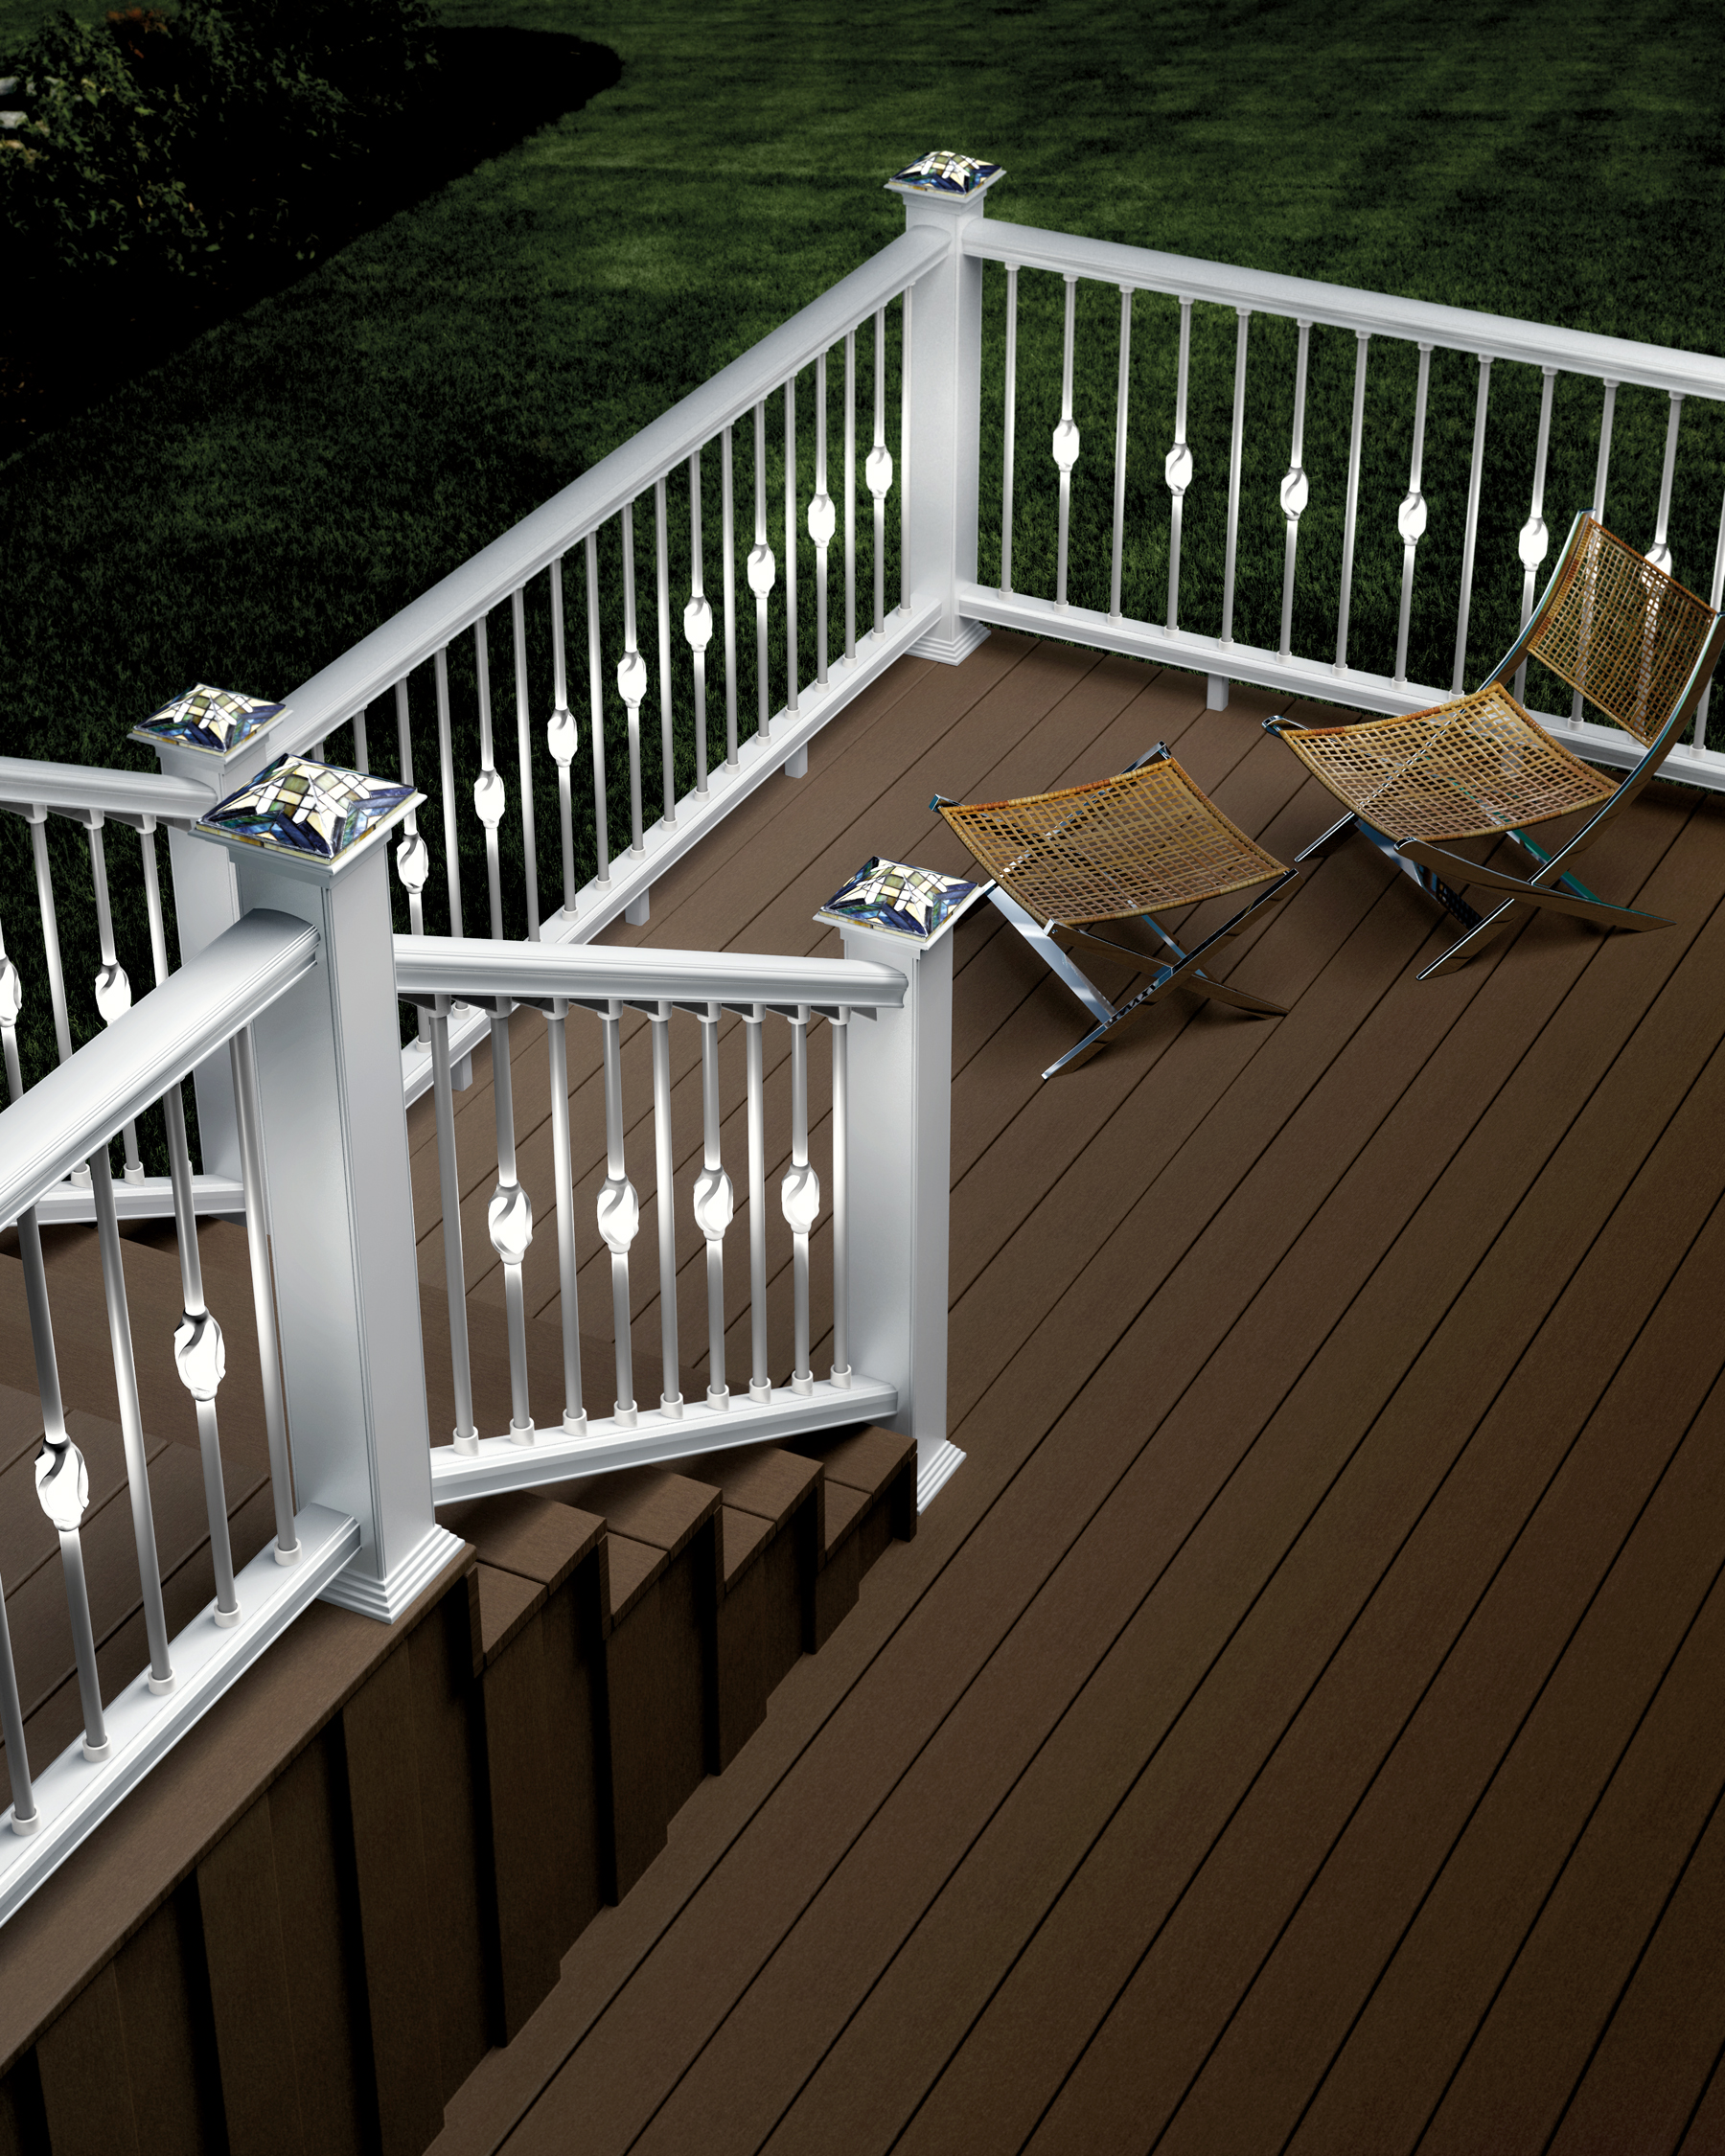 deck accent lighting. Deckorators Introduces New Low Voltage Accent Lighting For Decks And Outdoor Living Areas Deck T